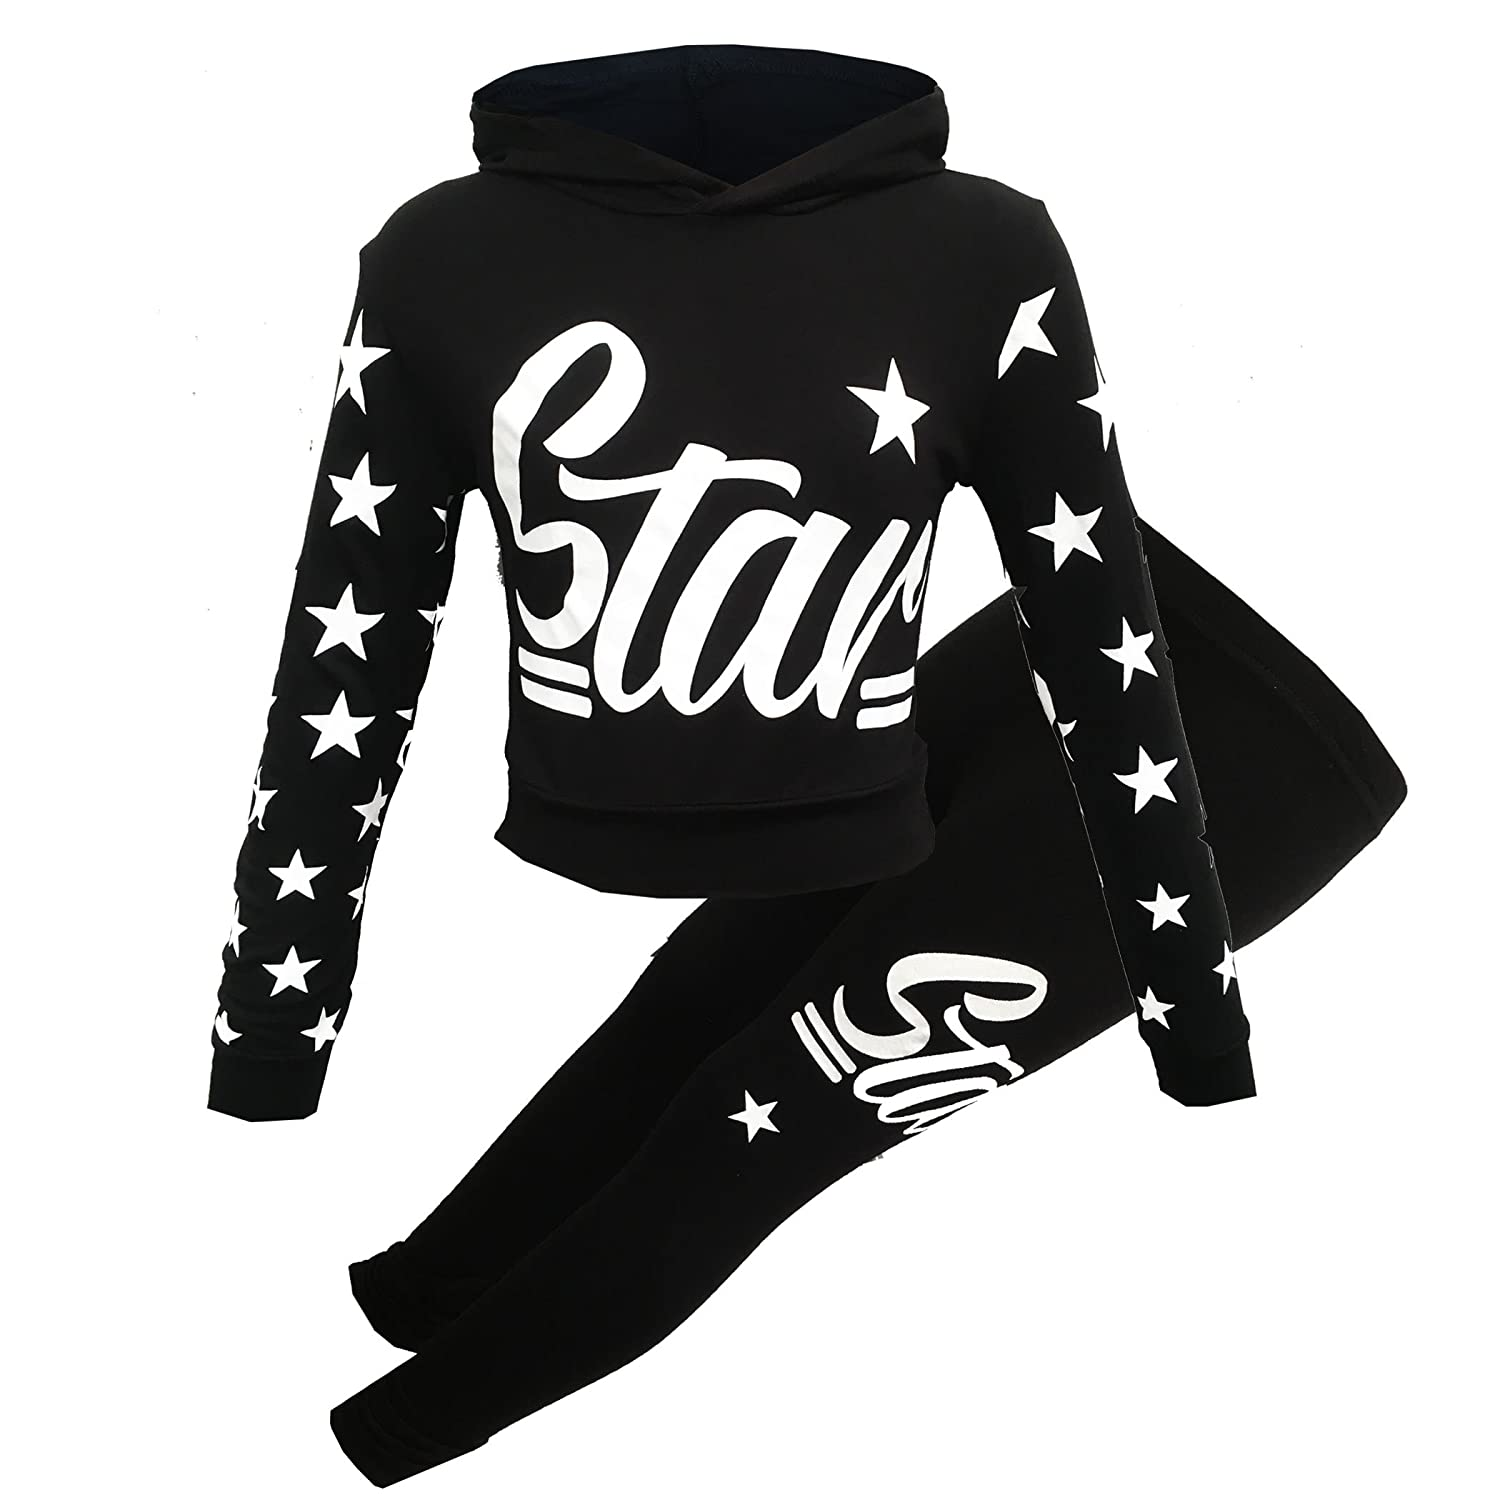 Girls Star Printed Long Sleeve Hooded Top /& Bottom Set Kids Tracksuit Jogging Set Fashion Outfit Age 7-13 Years